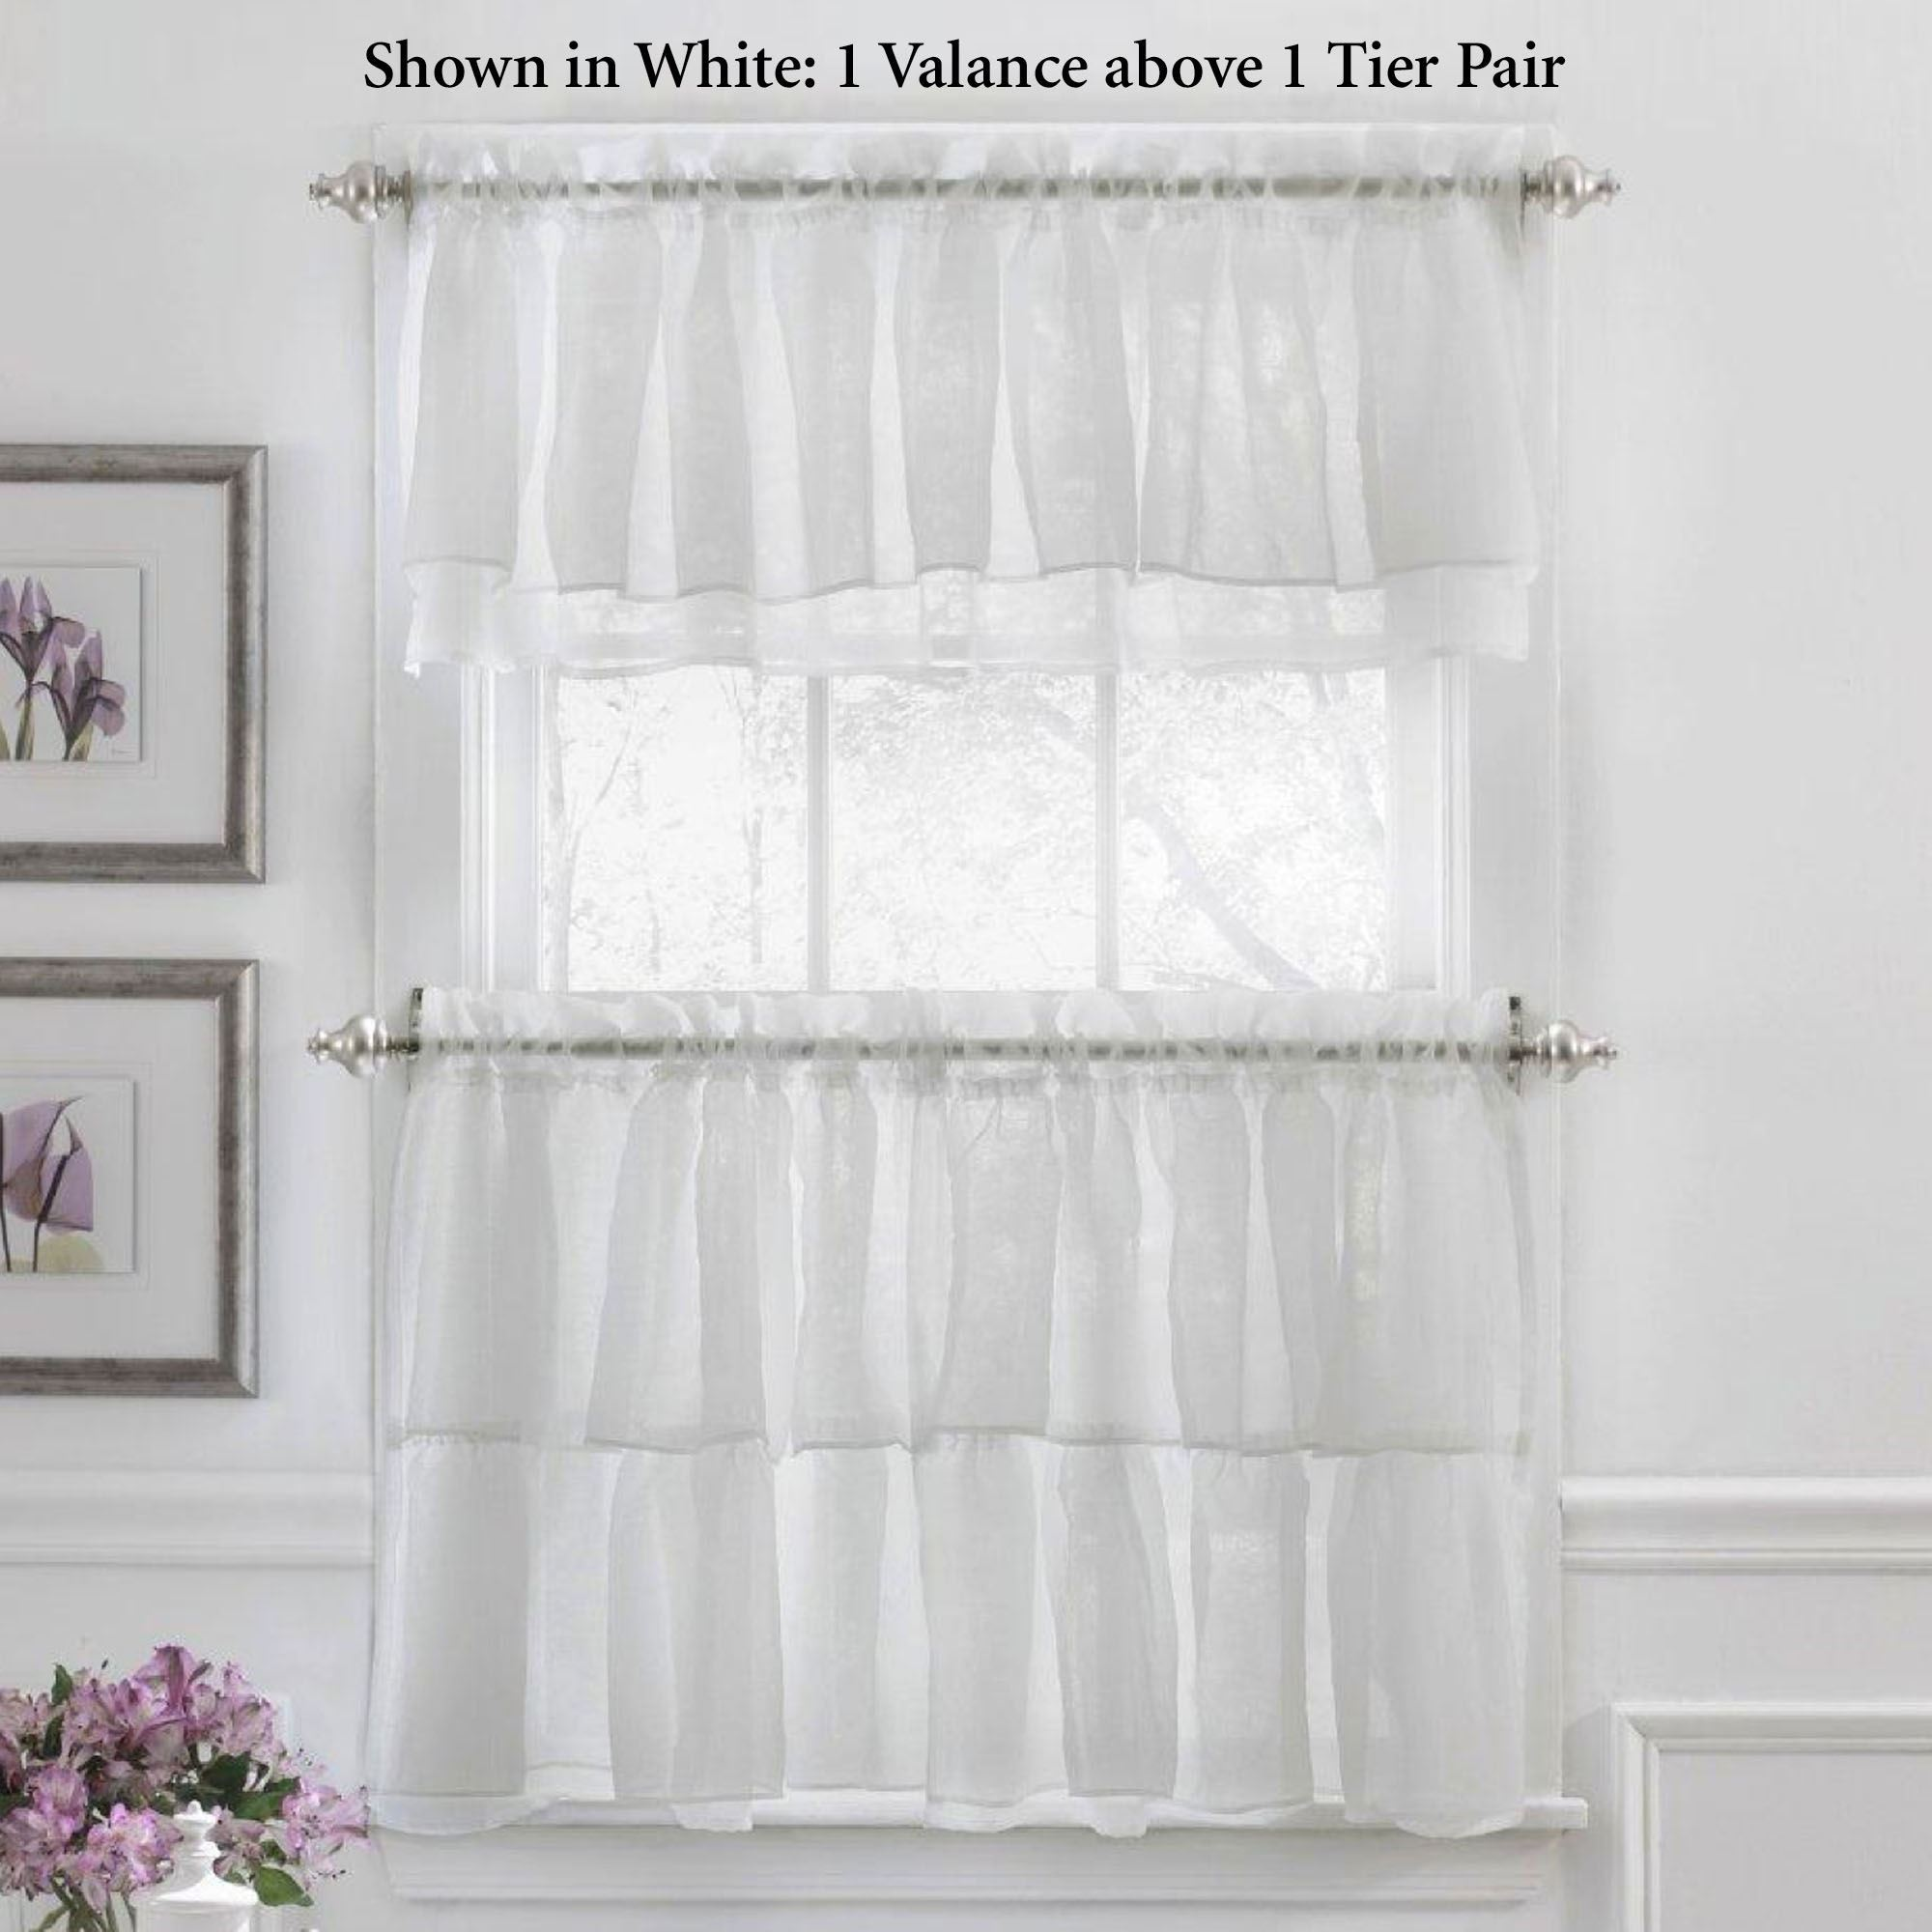 white at i pin these bedrooms for the girls piece store ruffle making a curtains ruffled got sheets thrift found and curtain panel